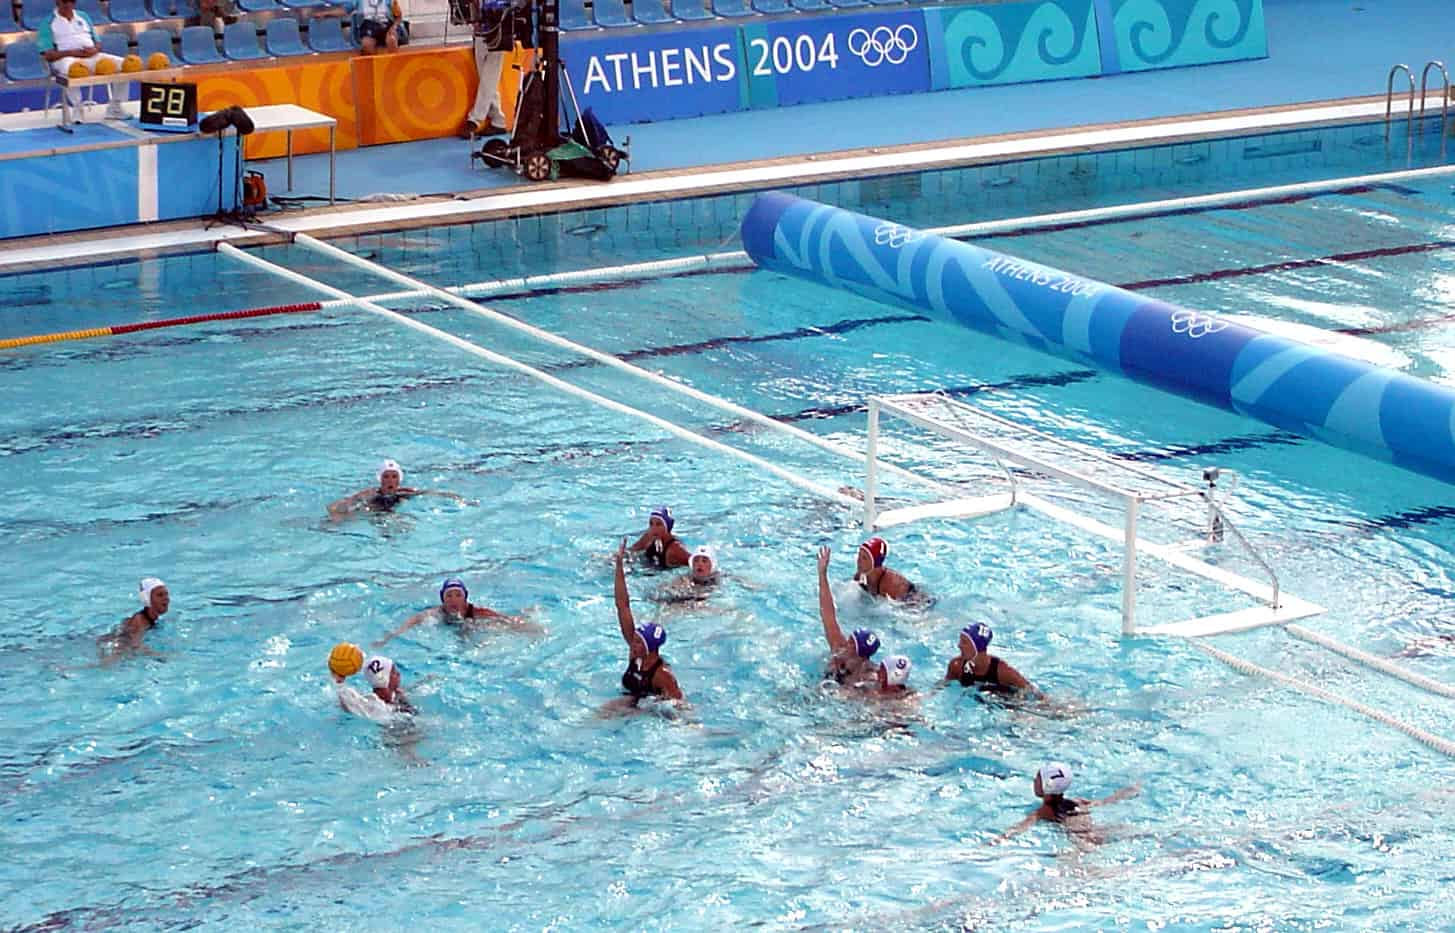 water polo athens 2004 sport image page